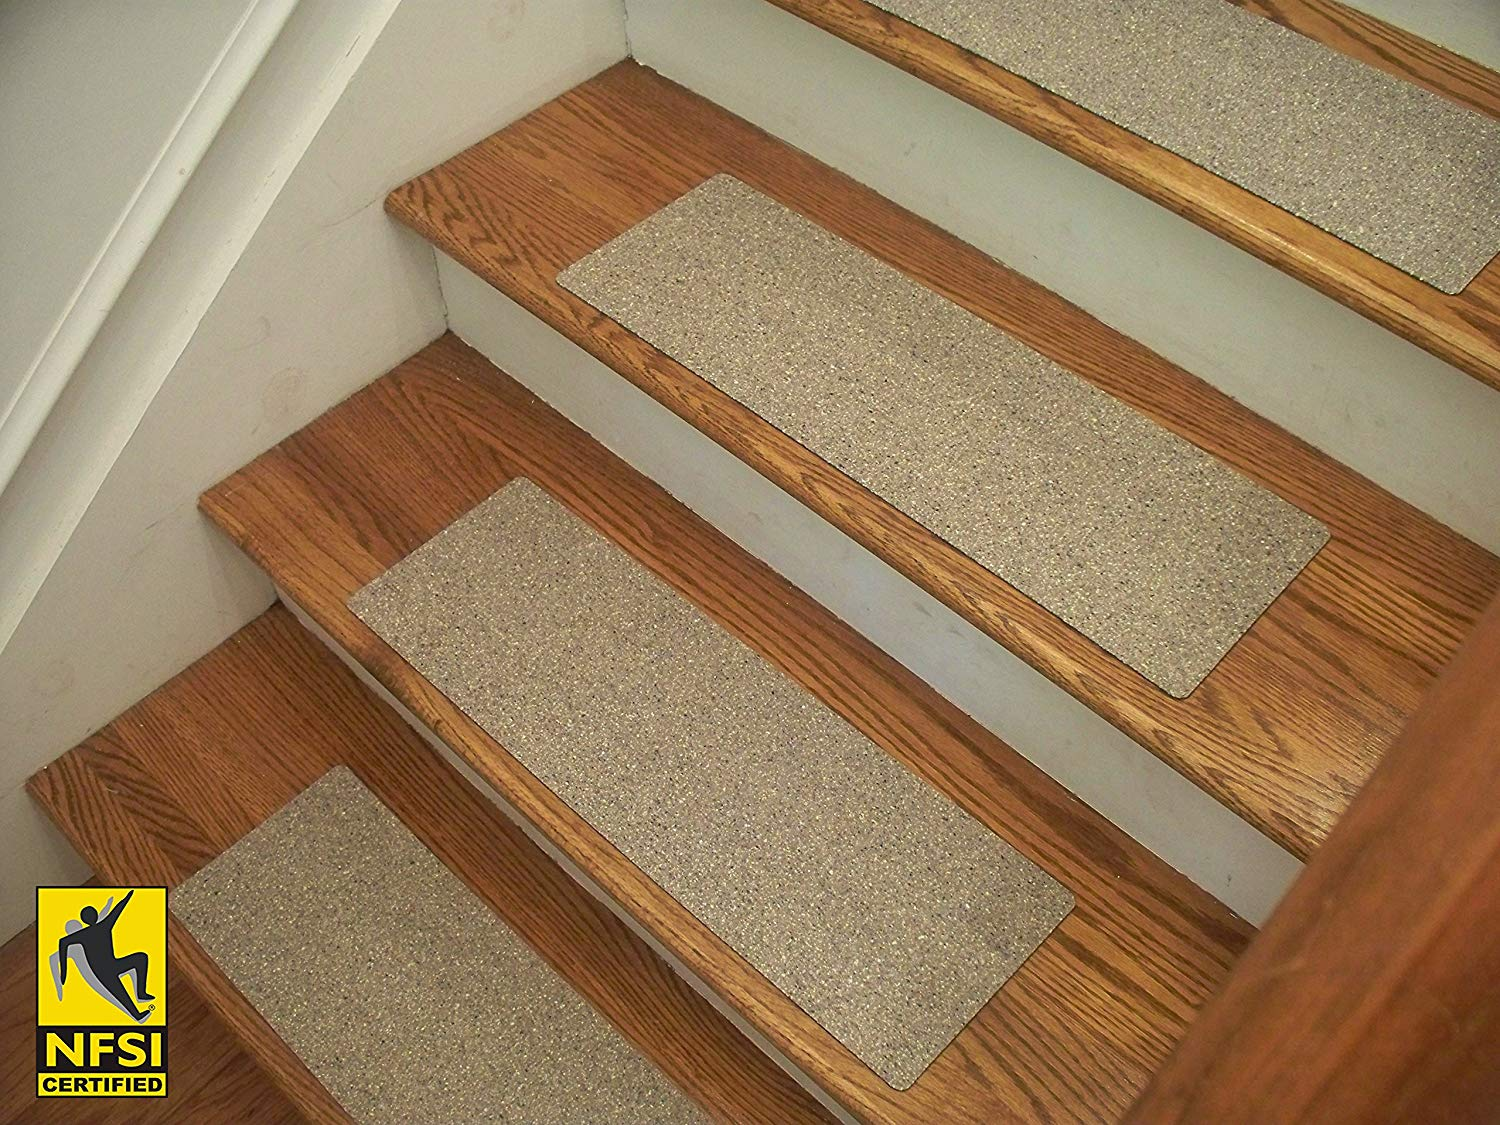 Get Quotations Essential Vinyl Stair Treads Nfsi Certified High Traction Surface Slip Resistant L